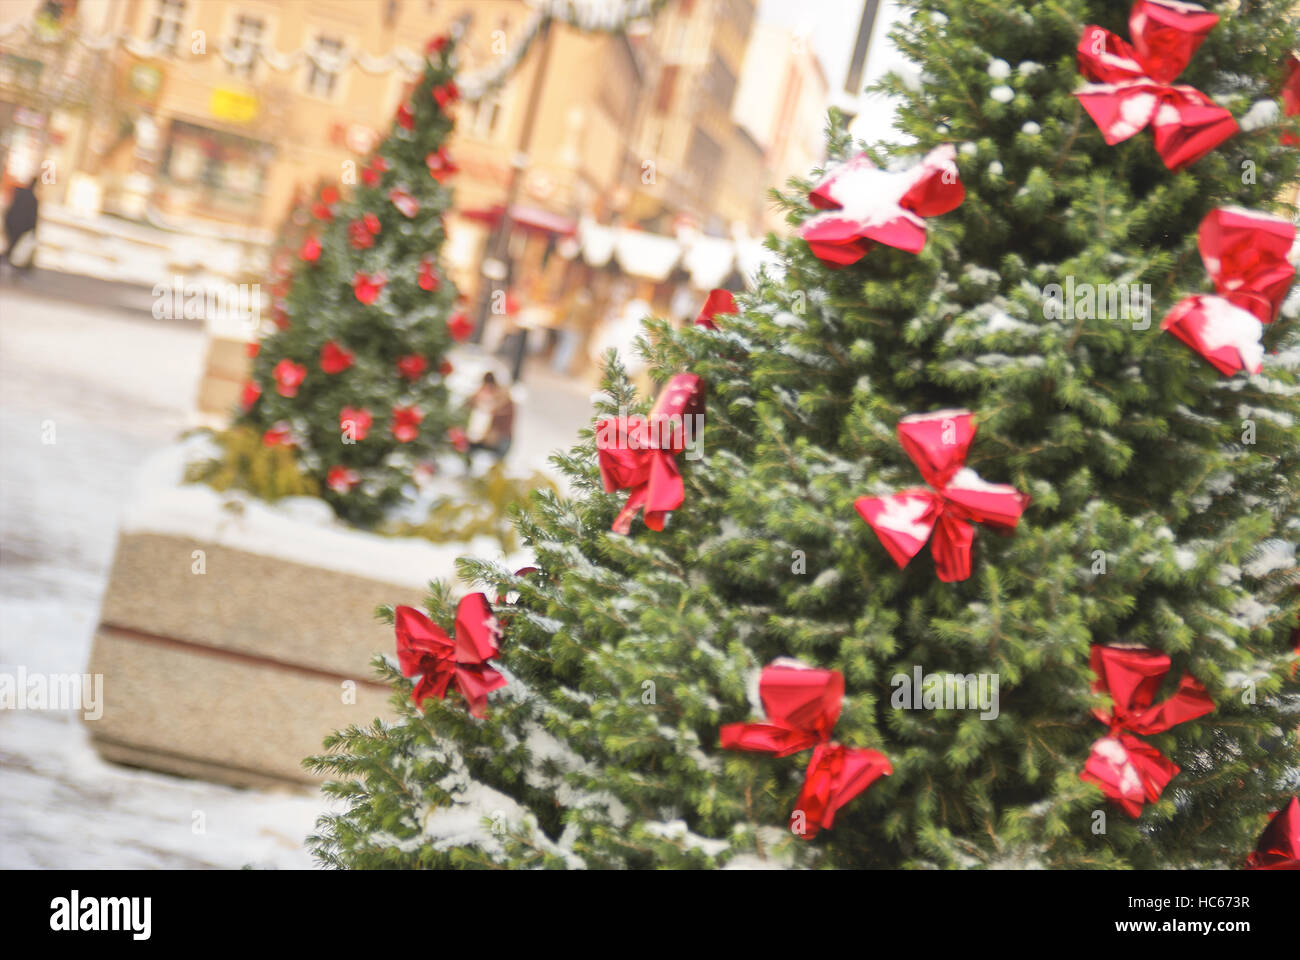 Large outdoor Christmas tree in Rybnik Poland - Stock Image